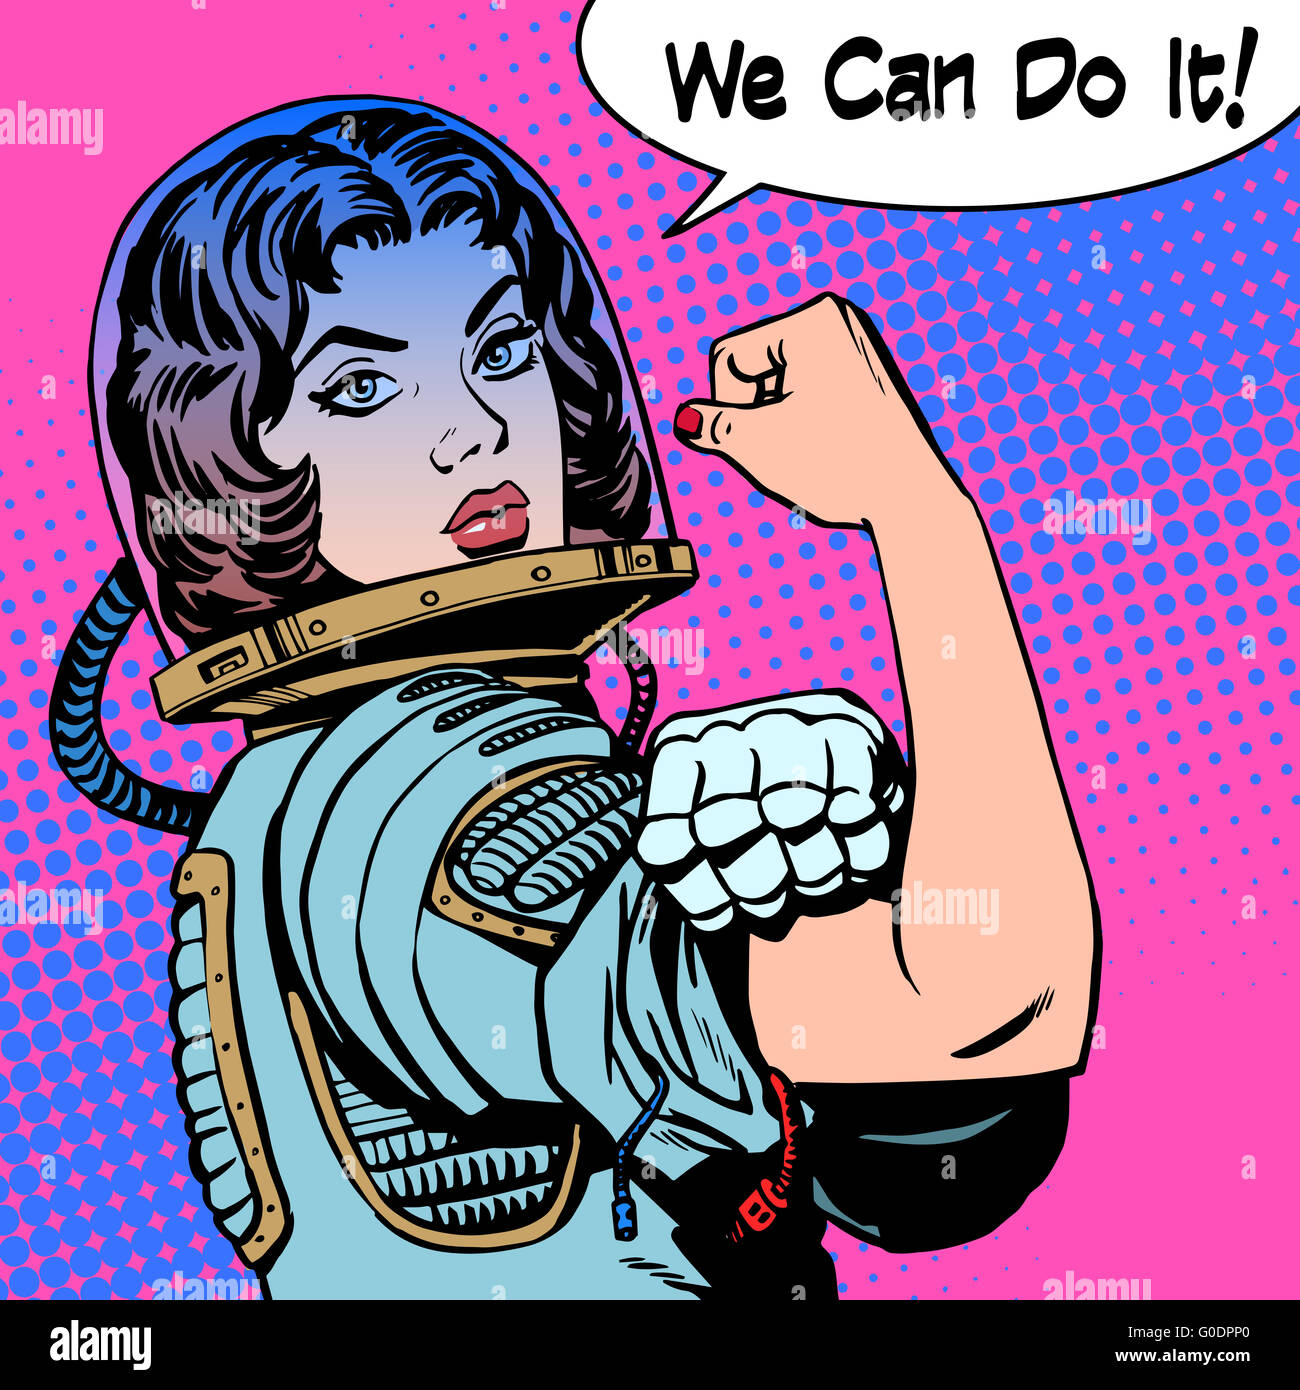 woman astronaut we can do it the power of protest - Stock Image